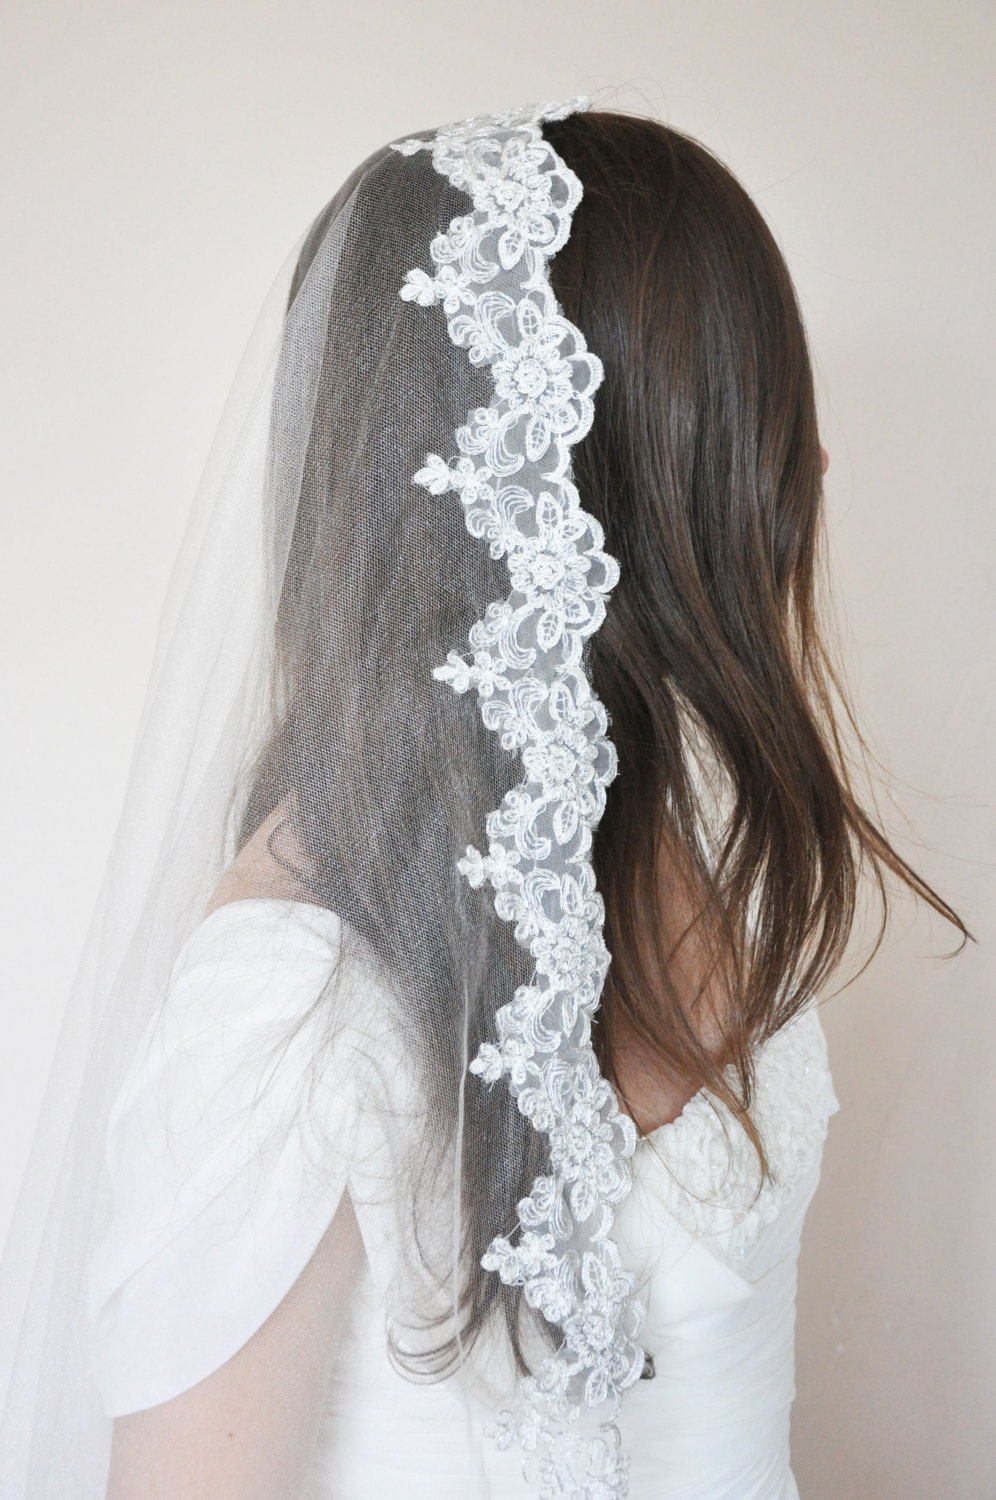 ... - Wedding Veil- Wedding Accessory- Bridal Veil- Headpiece- Bride